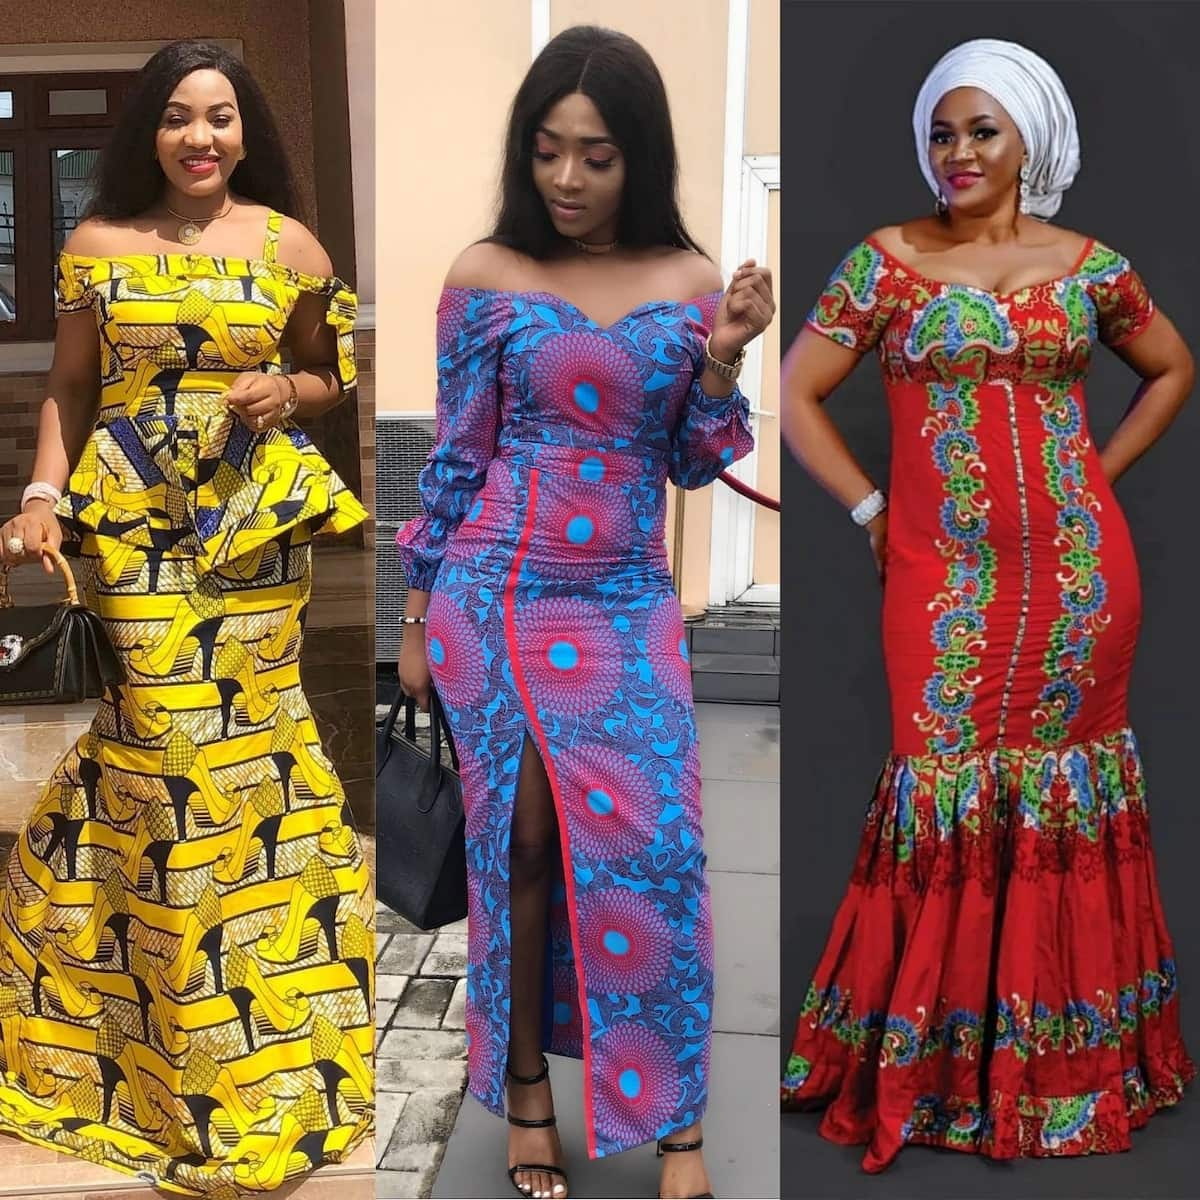 e56c435d2b04 engagement dresses 2018 engagement dress in ghana african kente wear for  engagement